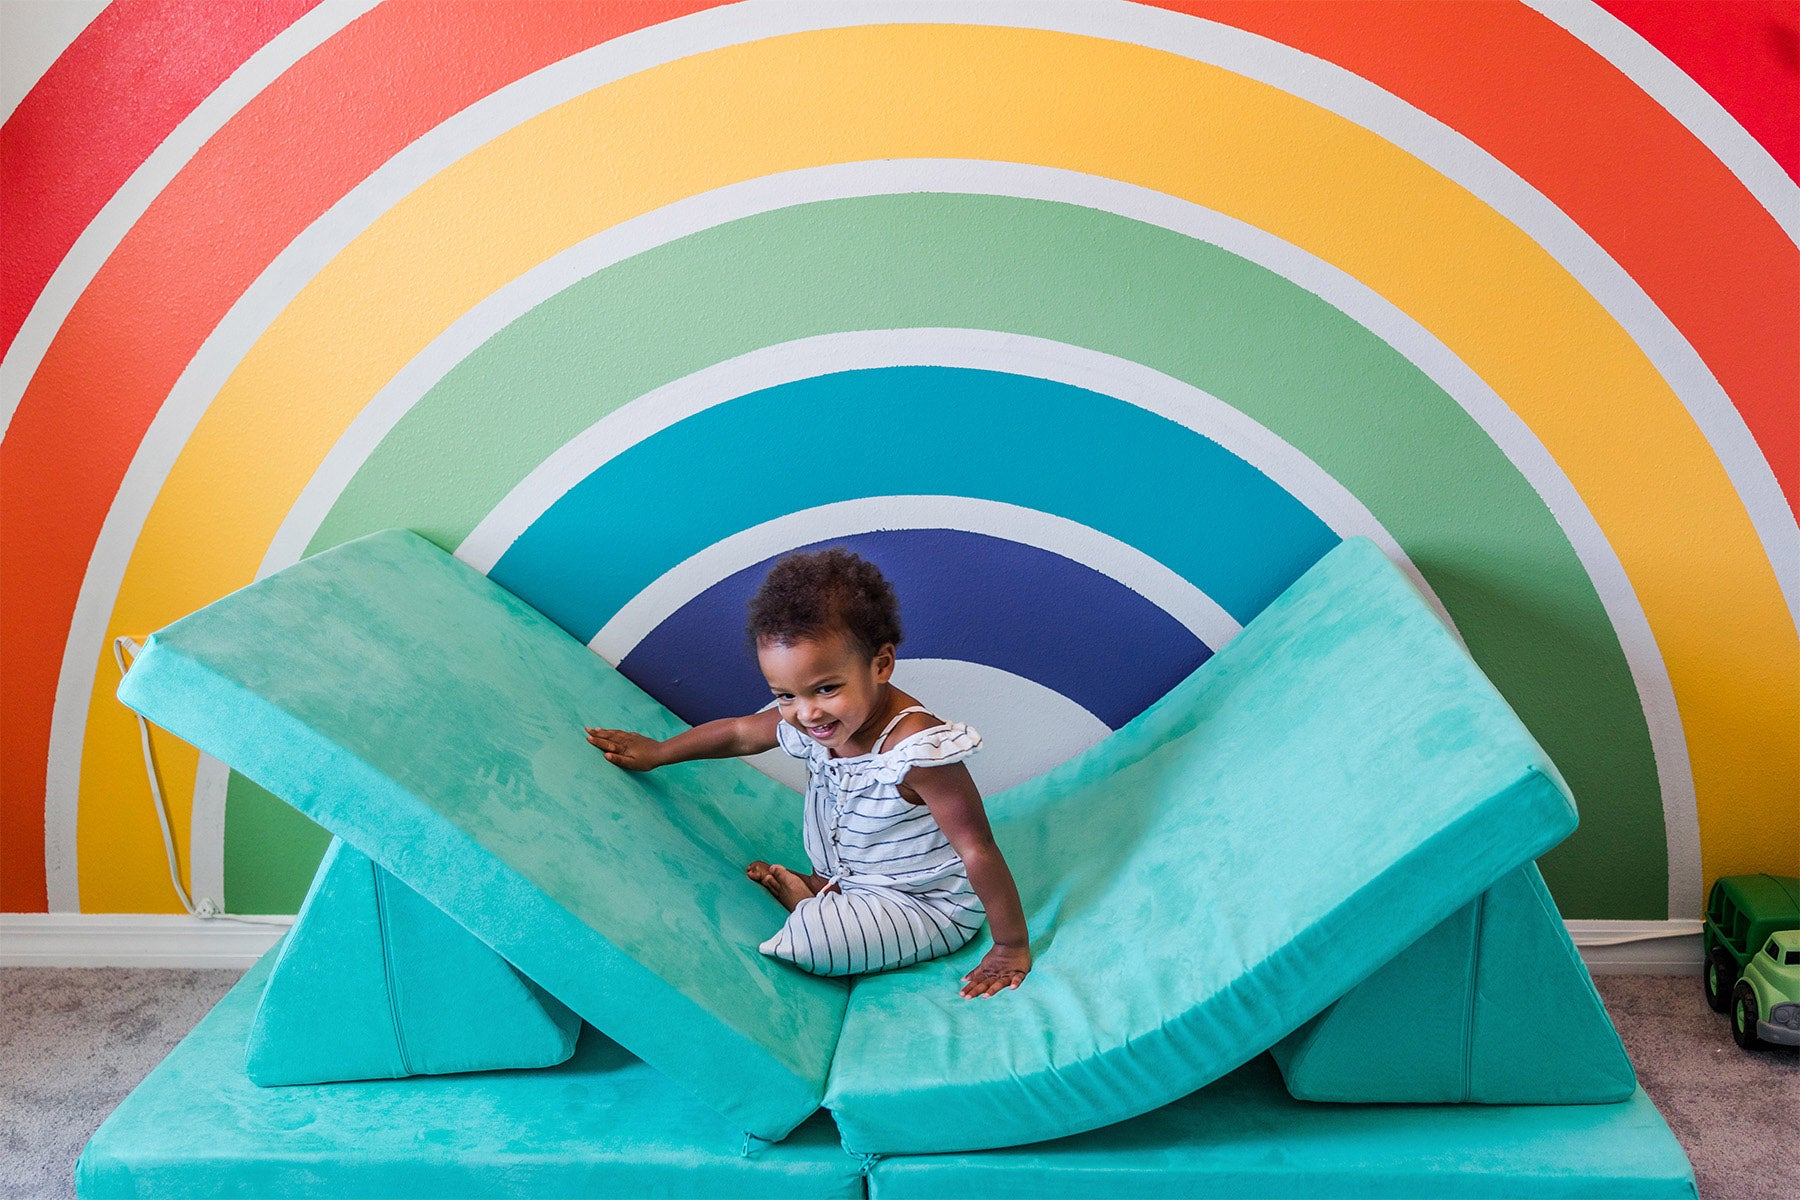 Young toddler playing on Cactus Nugget couch in front of bright rainbow mural on wall